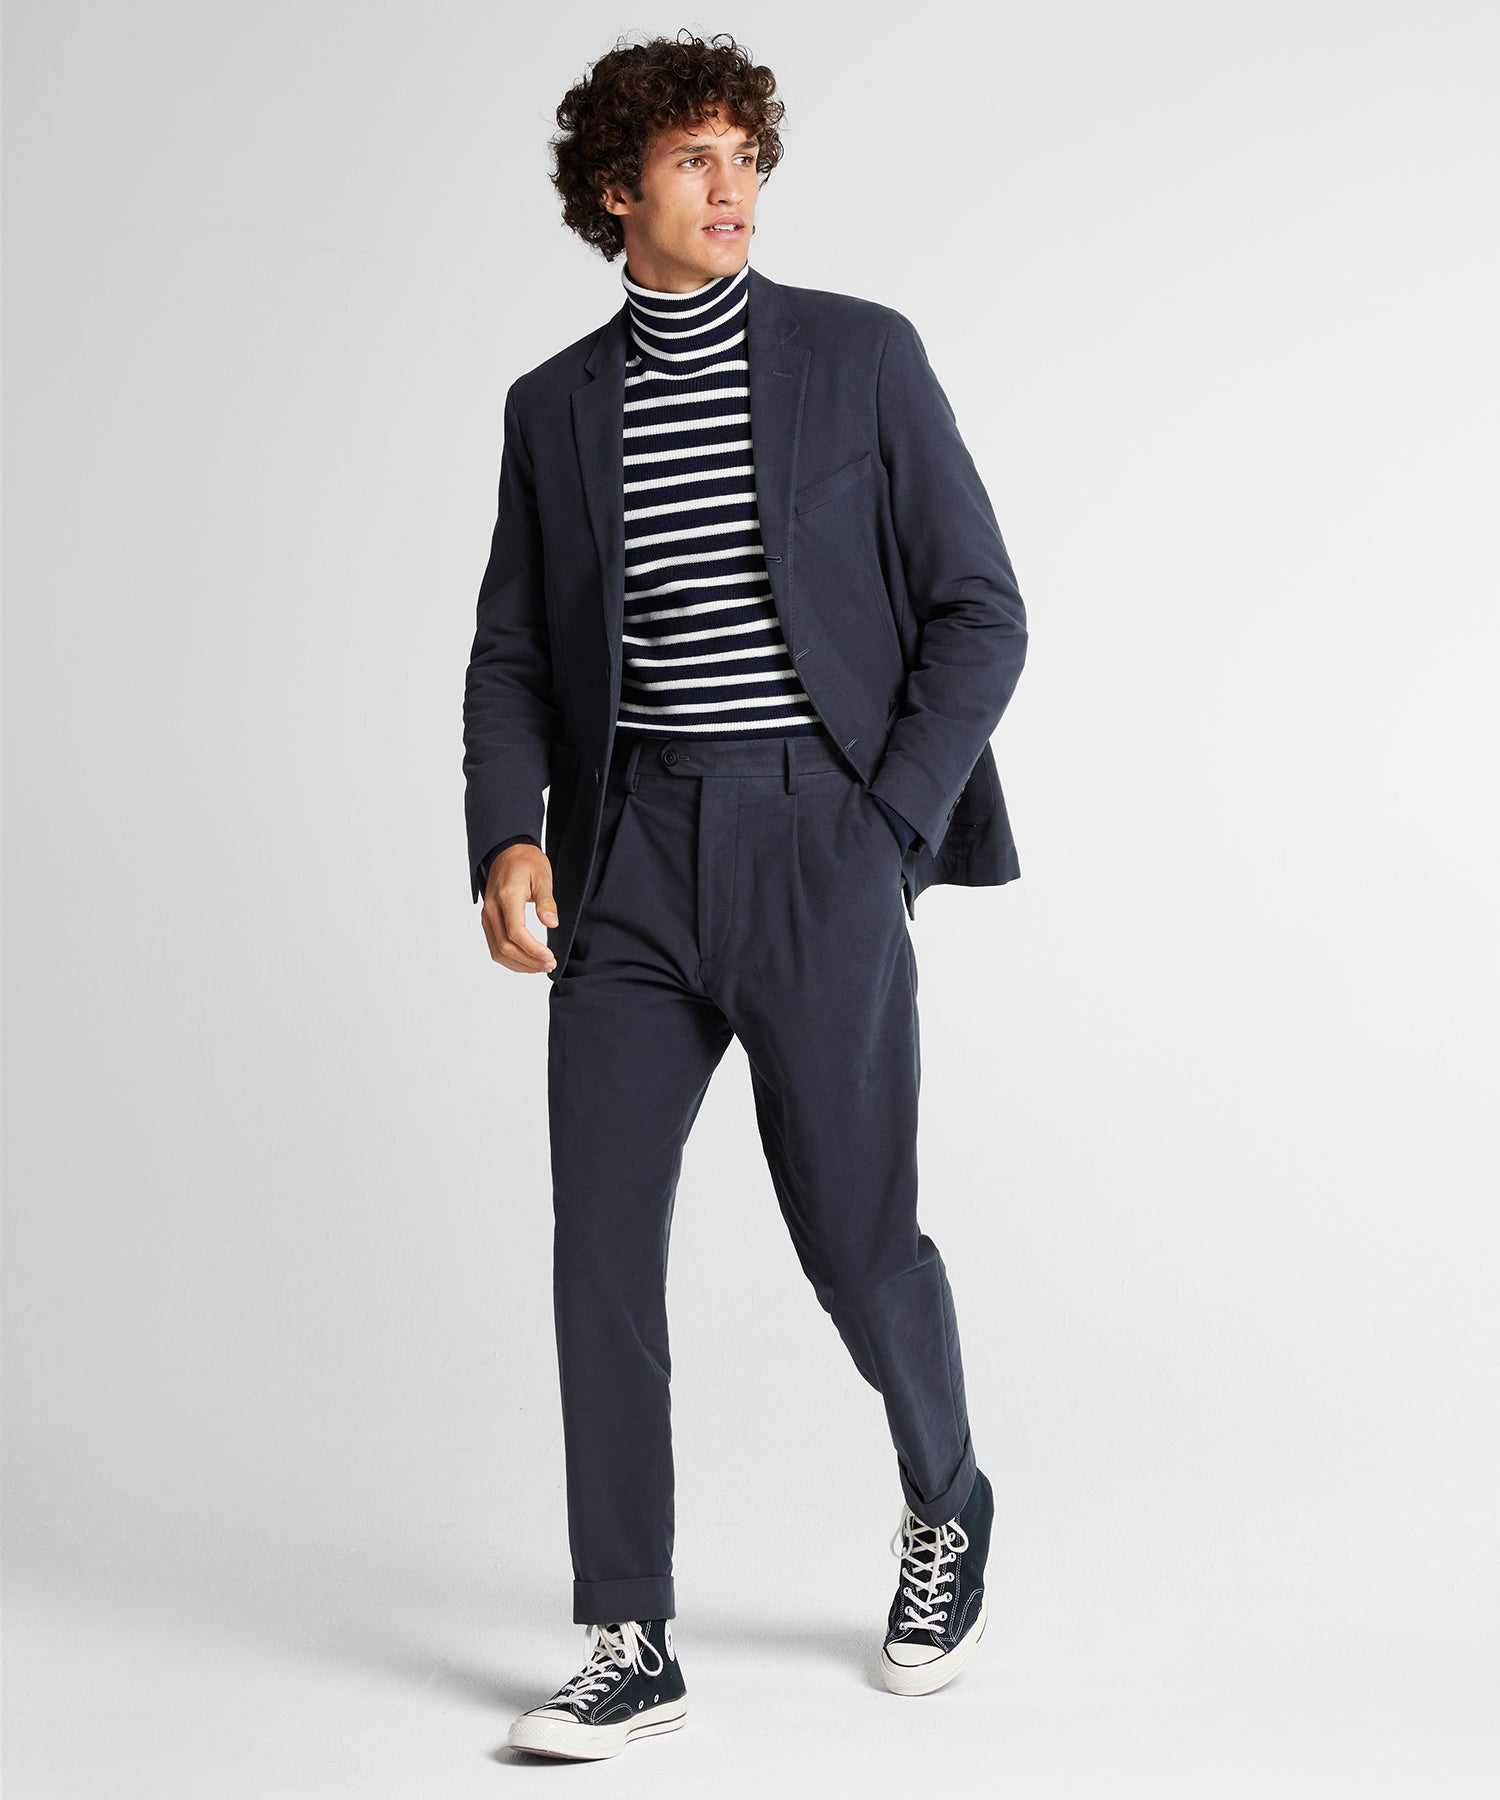 Stretch Moleskin Madison Suit in Charcoal